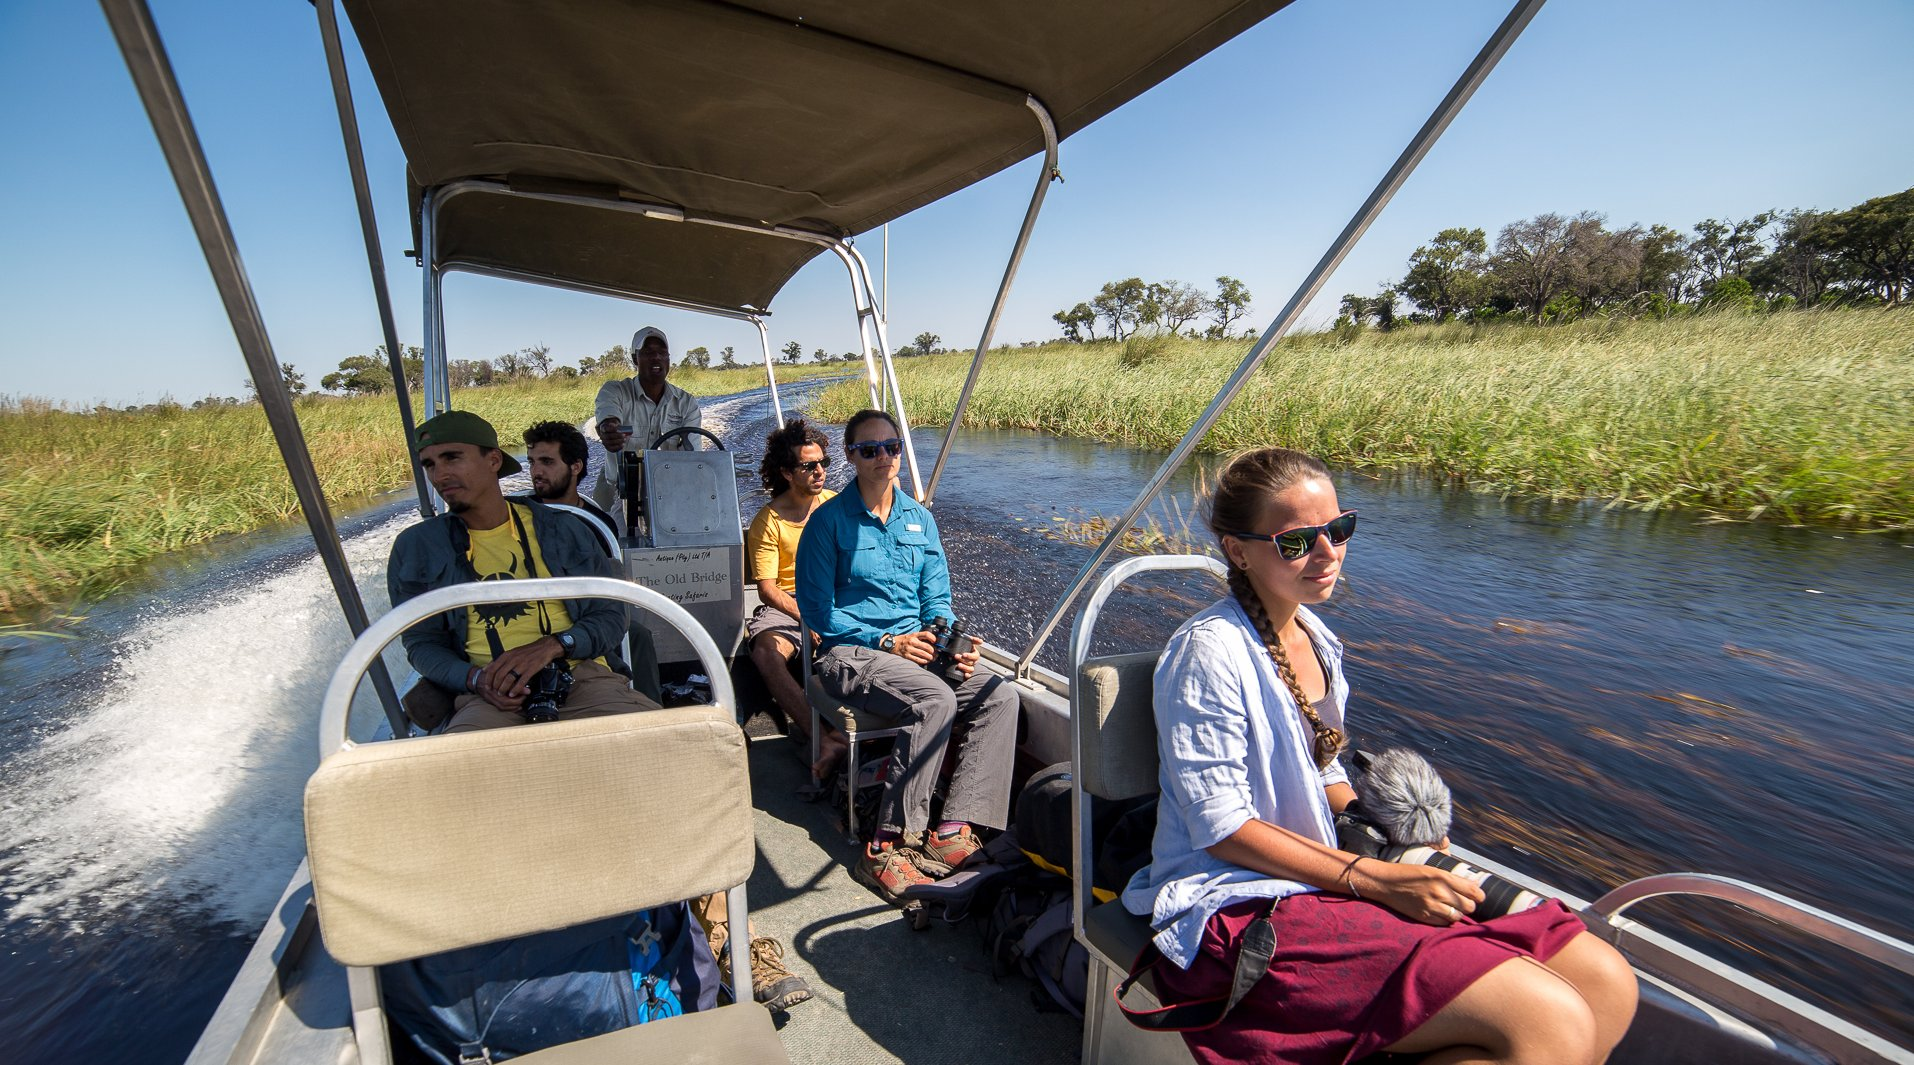 Okavango delta boating